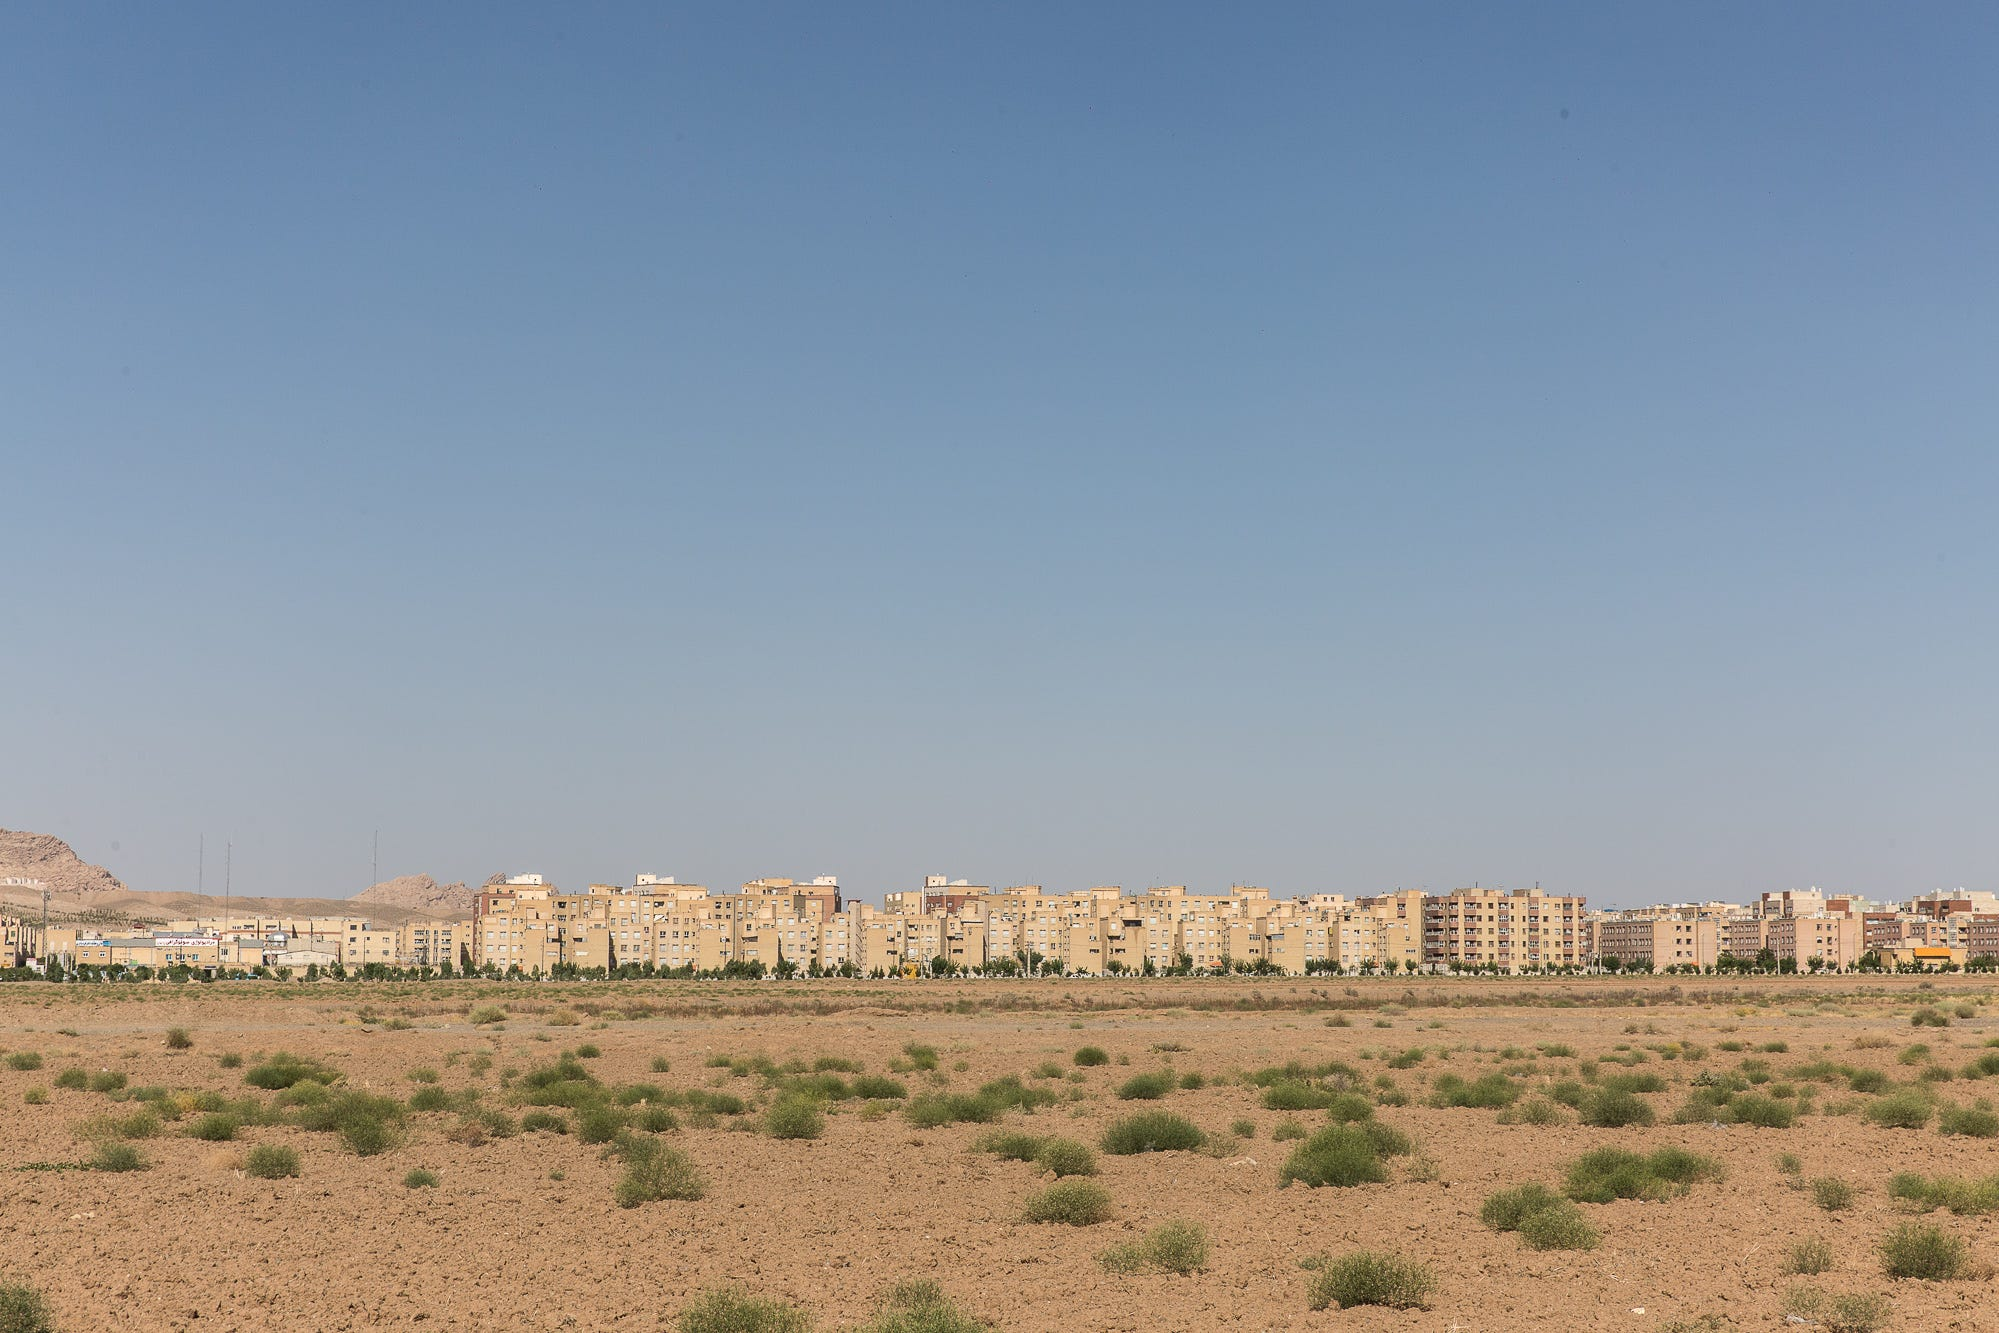 Residential buildings in Qom, an Iranian desert city popular with clerics and religious scholars, on July 12, 2018.